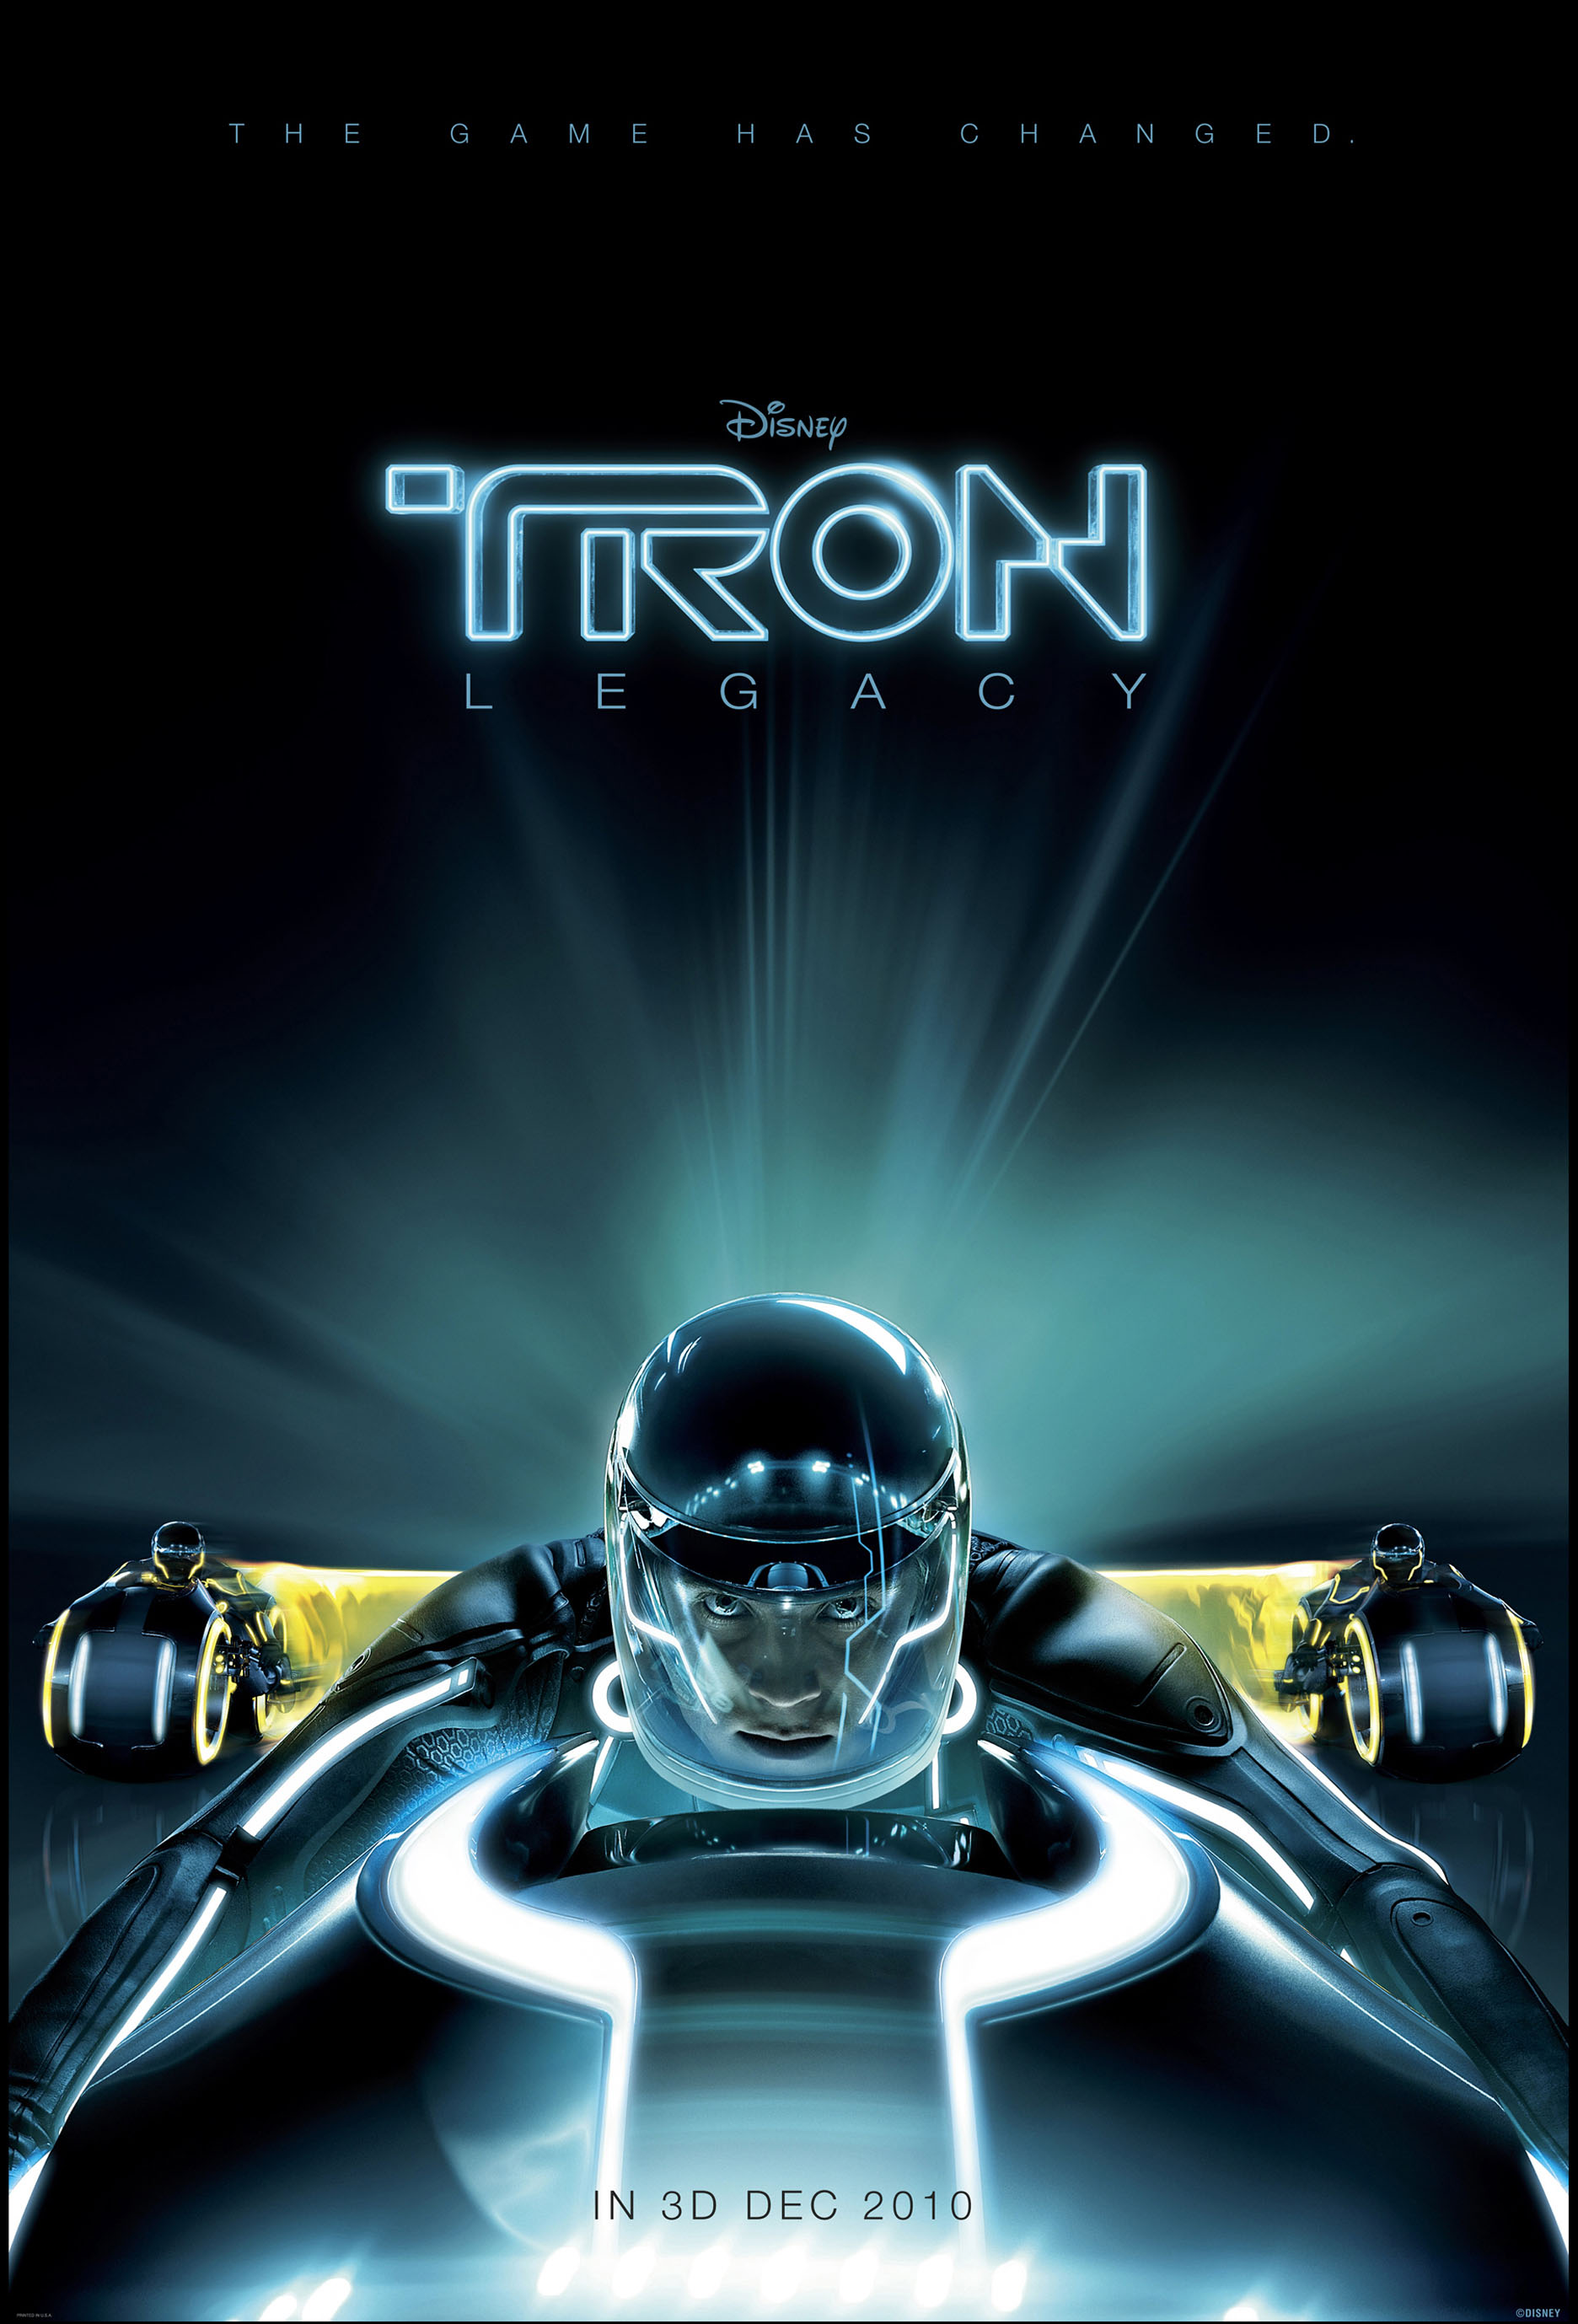 Edition Of Tron Legacy Video Game Tron Evolution Announced | Short ...